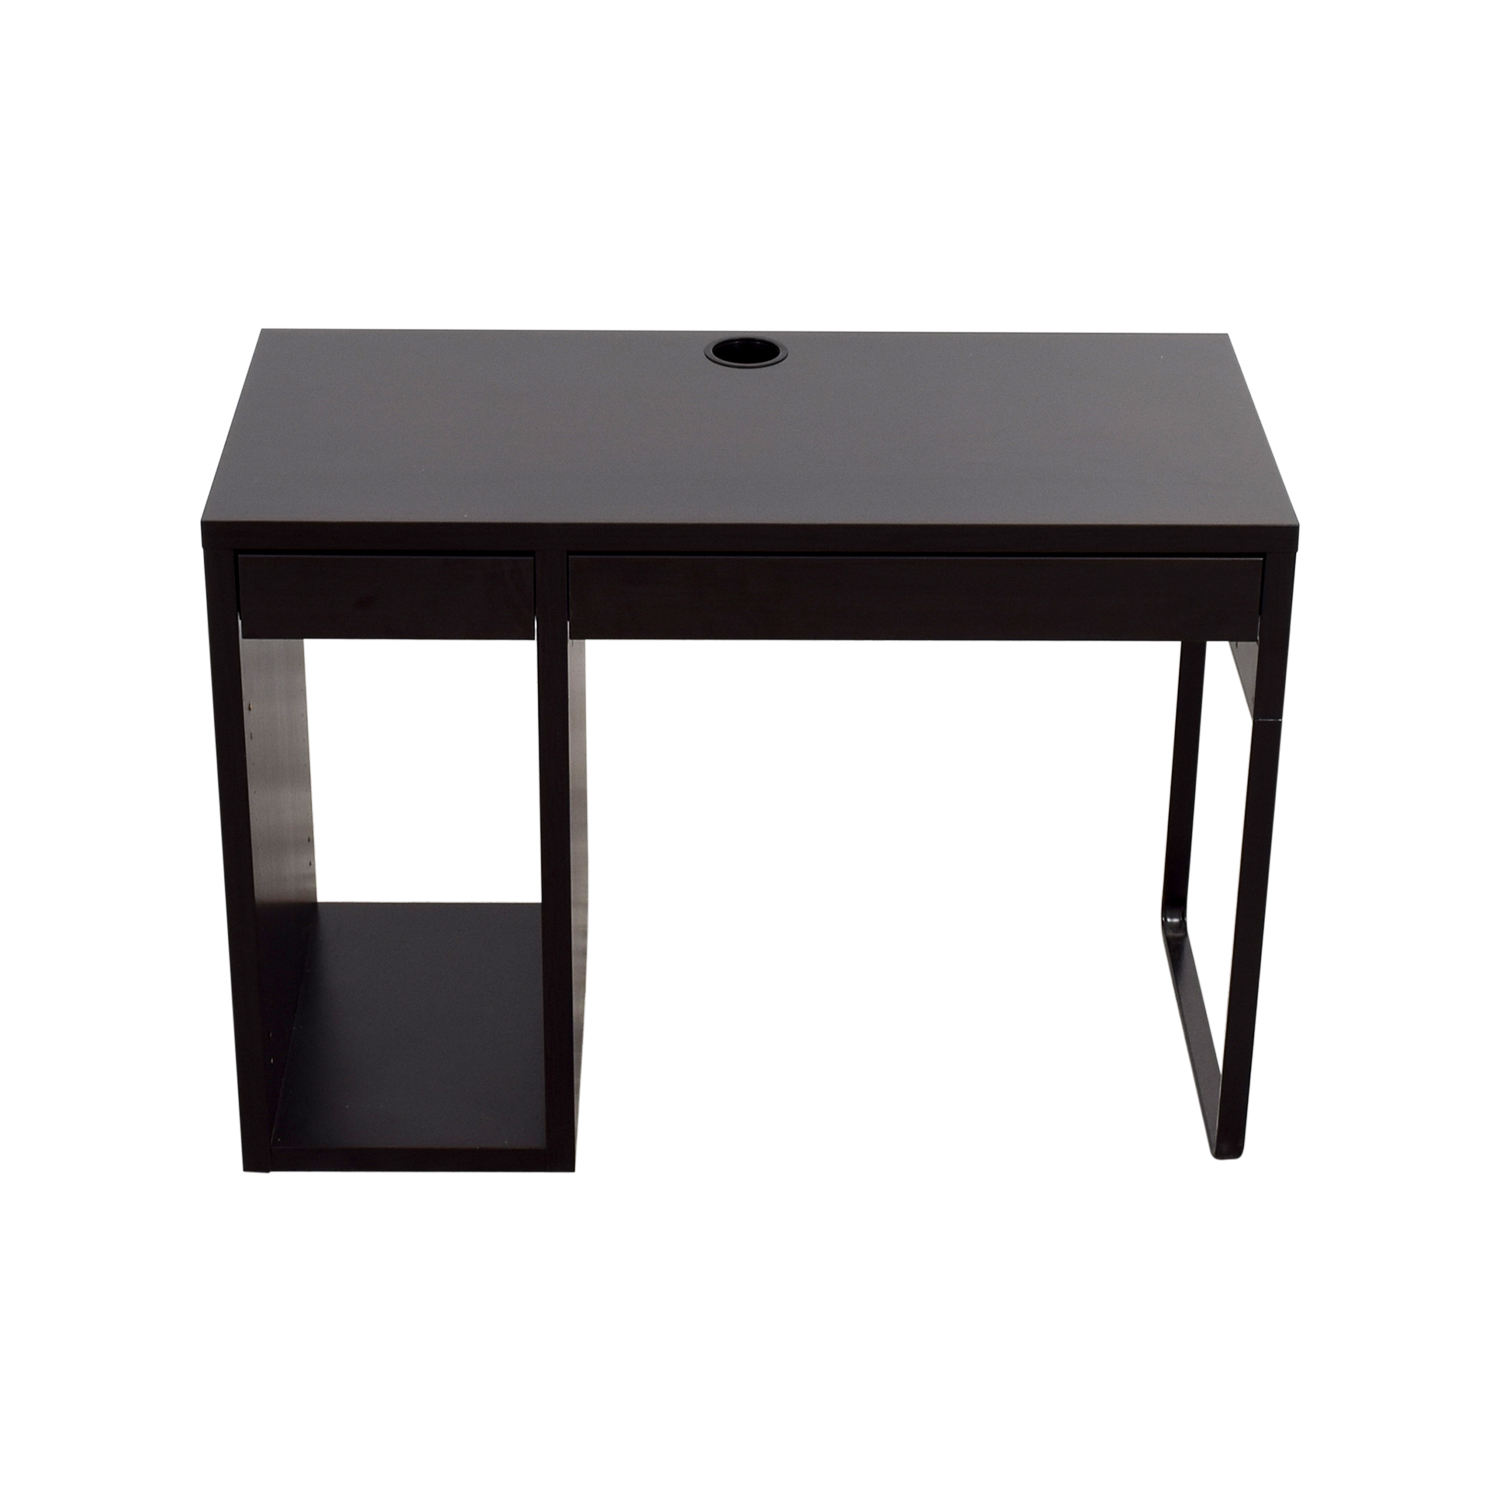 IKEA IKEA Micke Two-Drawer Desk coupon